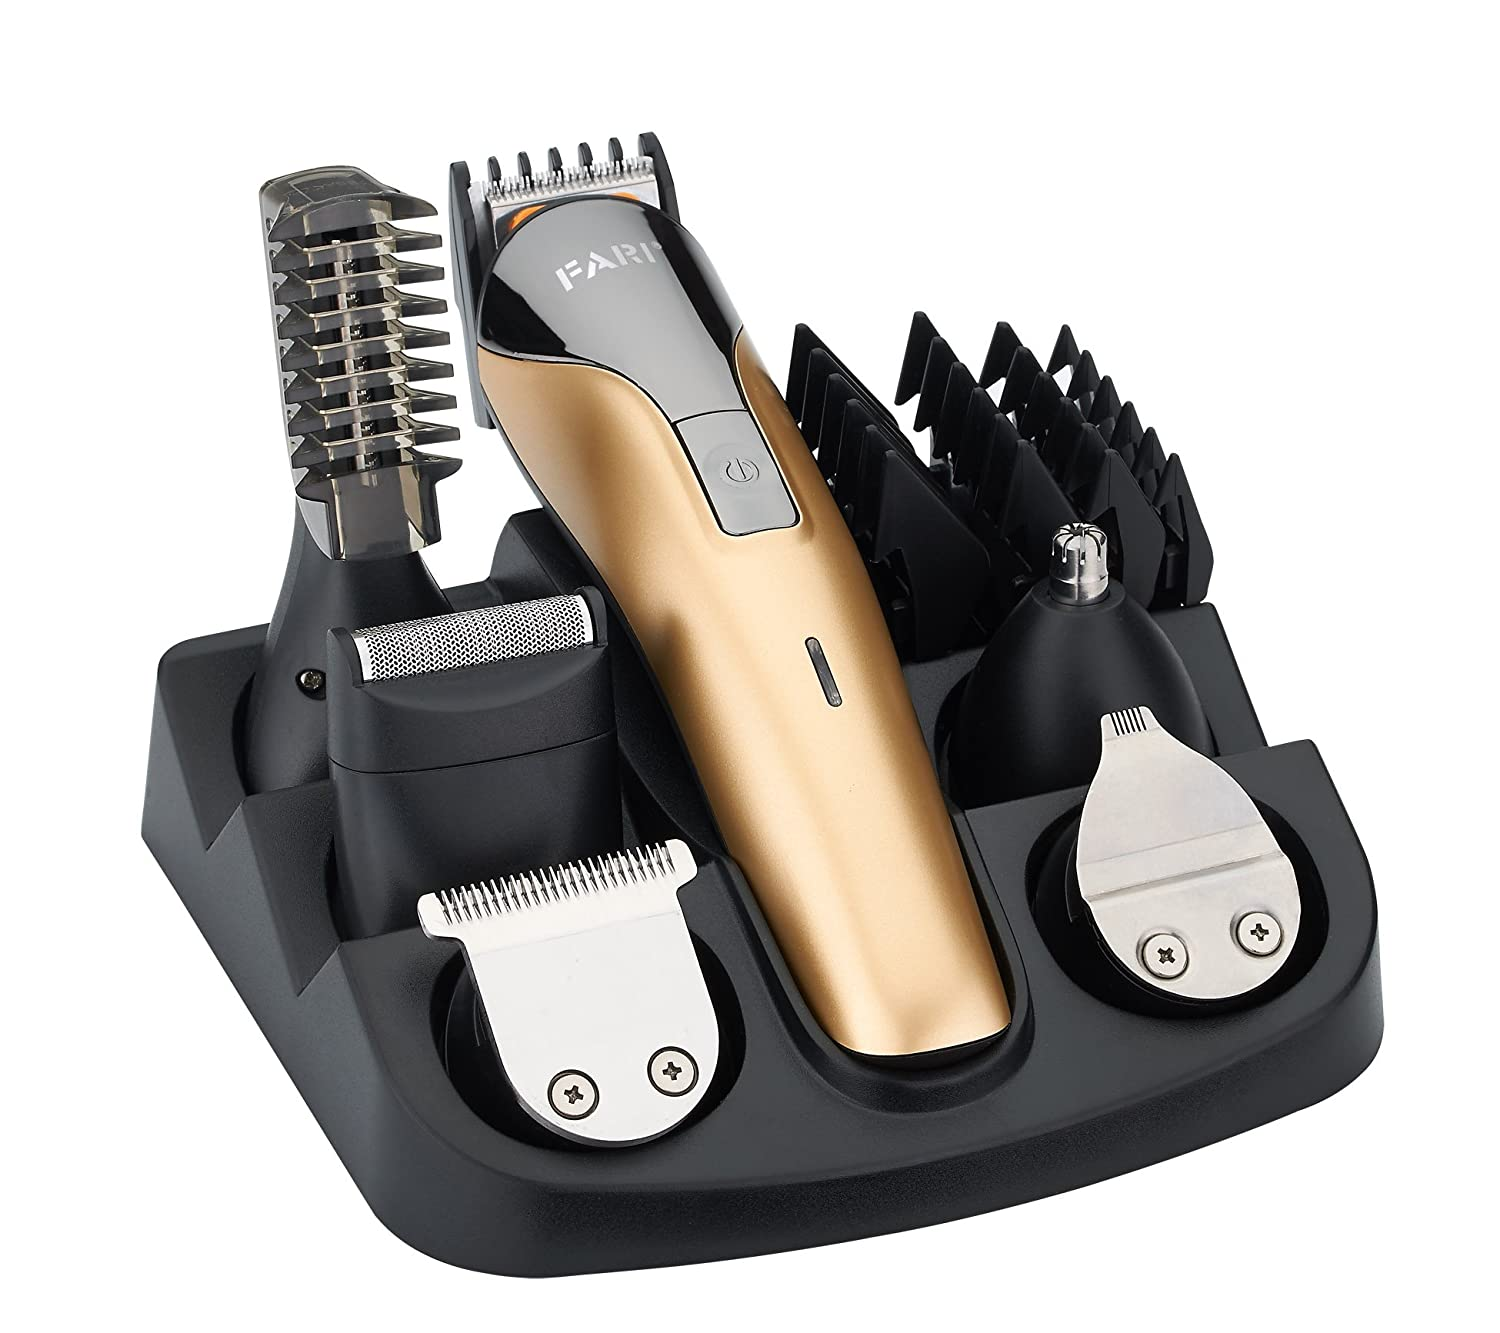 beard trimmer hair clipper all in 1 man 39 s grooming kit facial nose body ebay. Black Bedroom Furniture Sets. Home Design Ideas